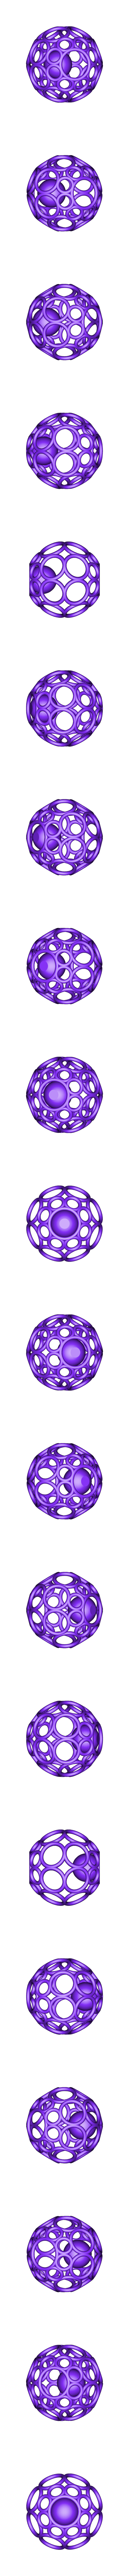 sphère_cage.stl Download free STL file Spherical cage with ball • Template to 3D print, NOP21